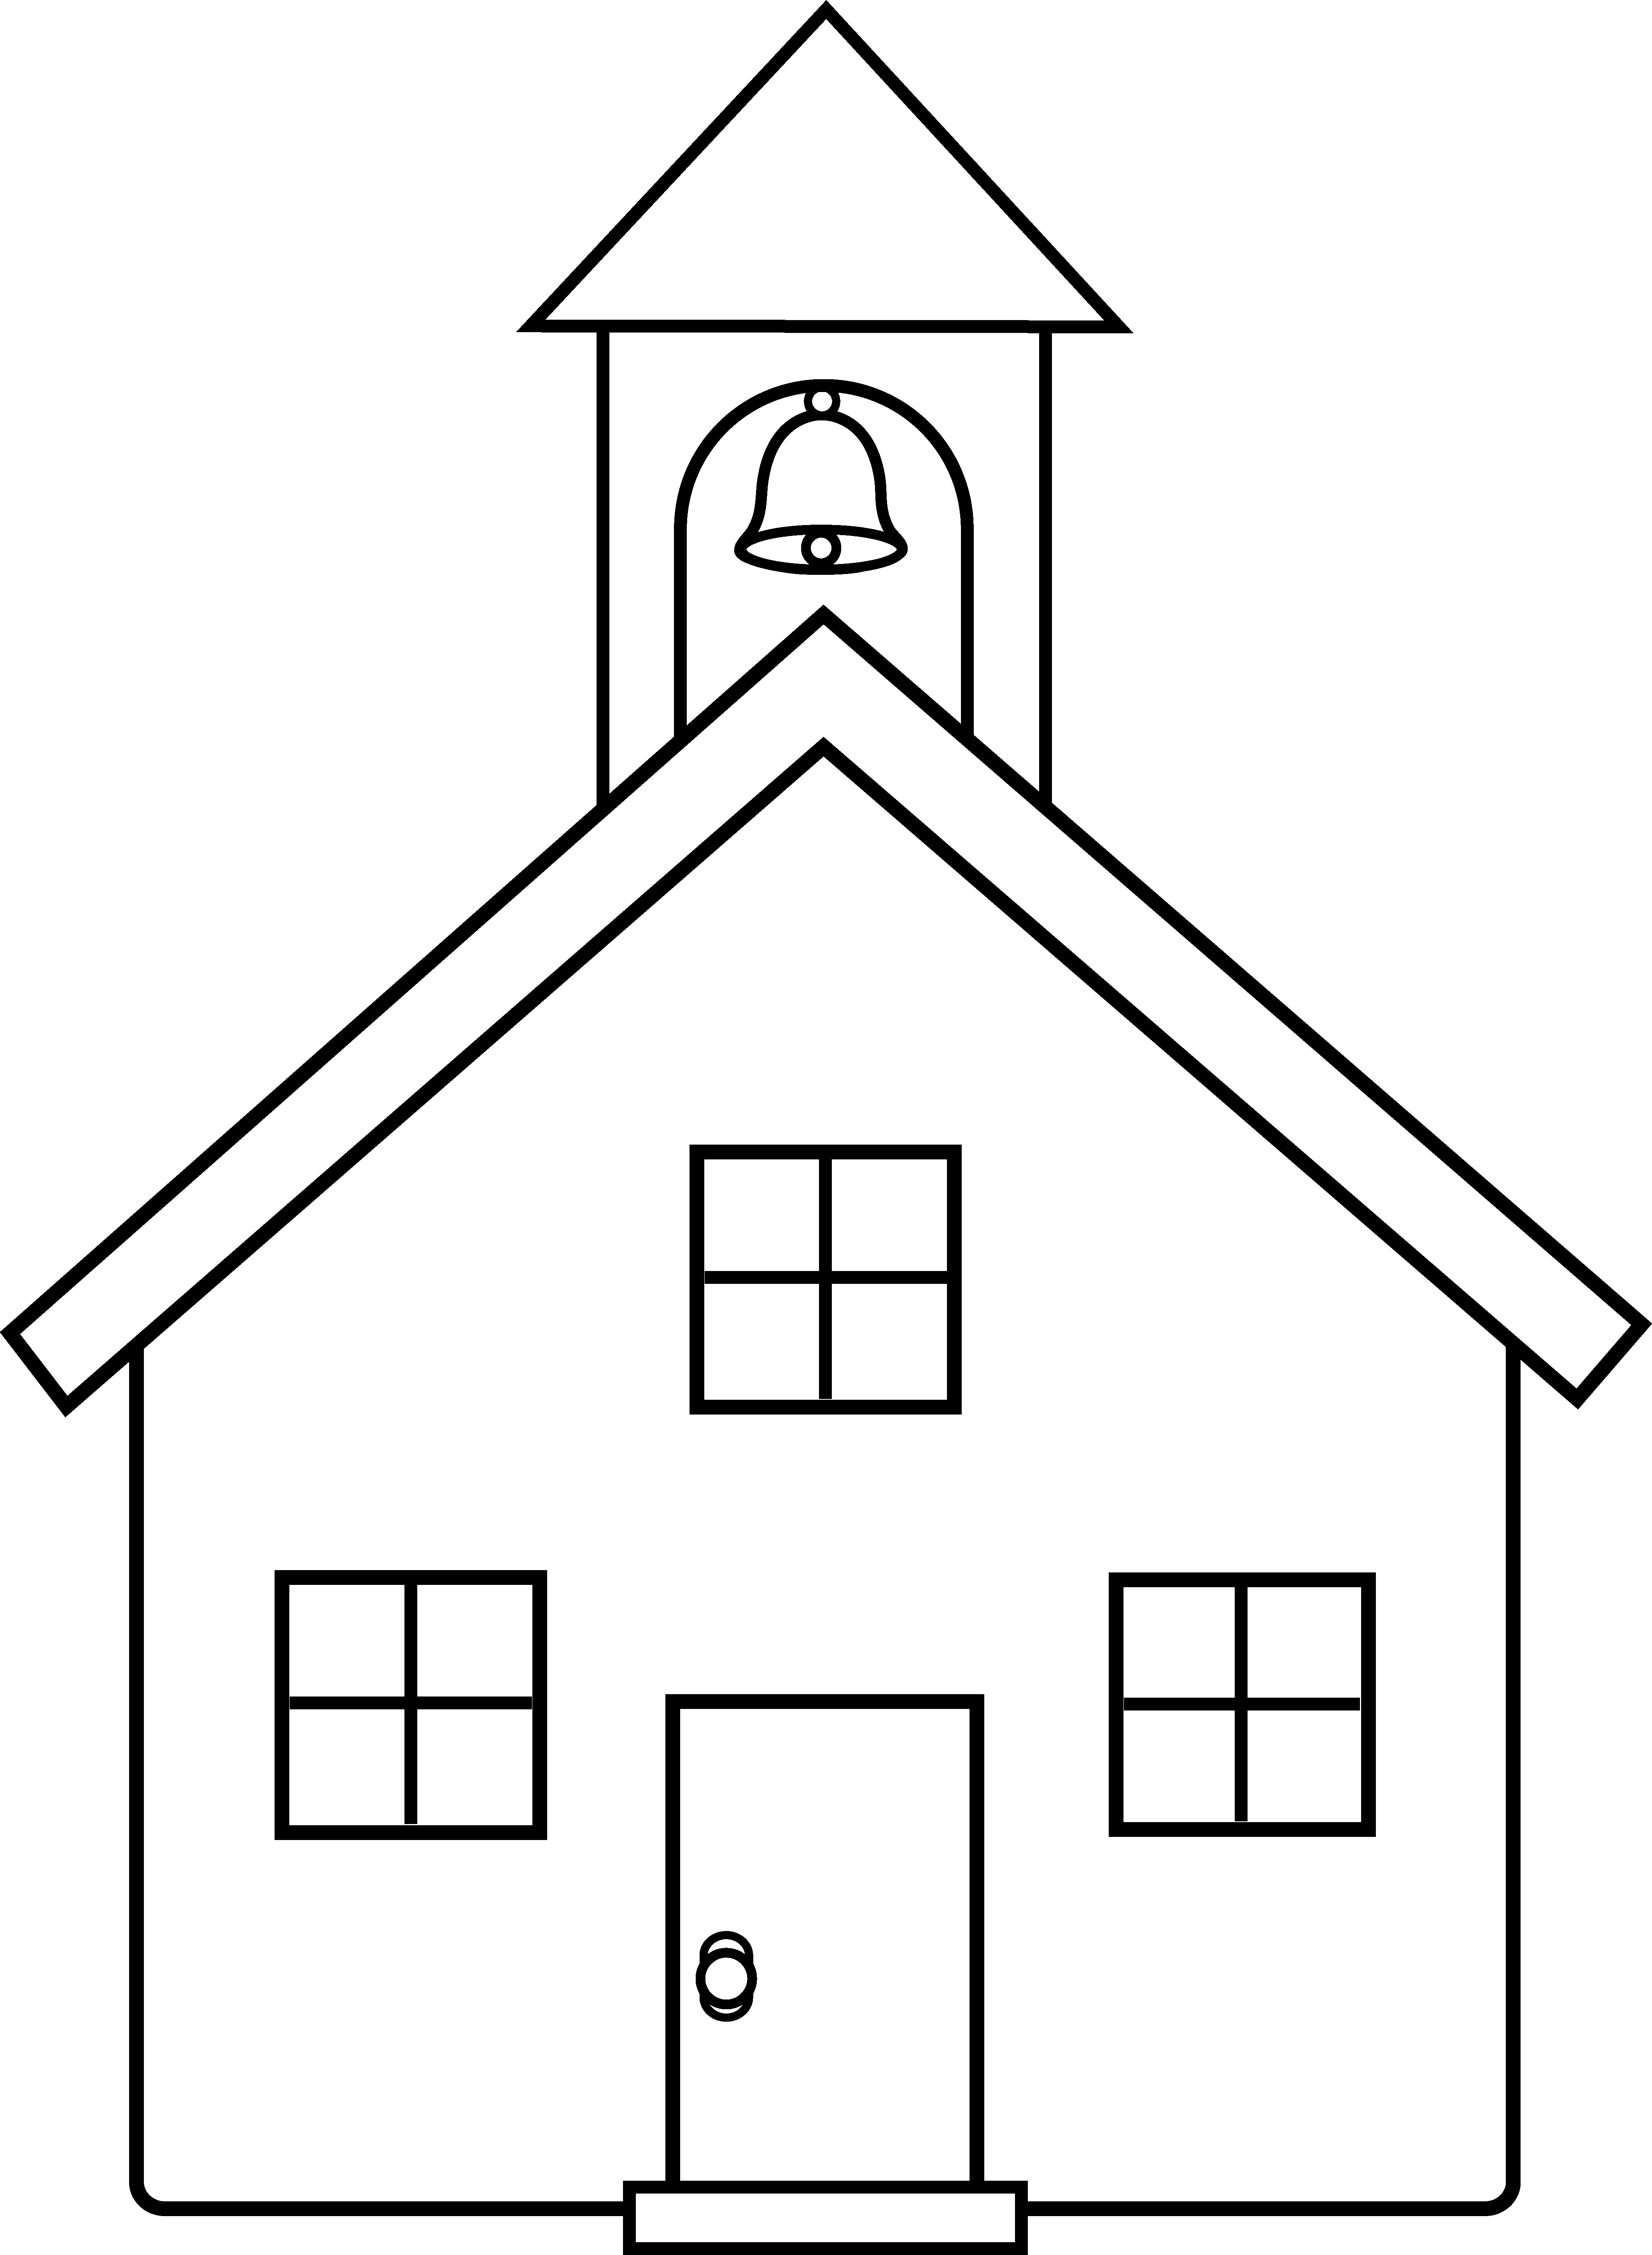 Schoolhouse clipart school sketch. Old house drawing at